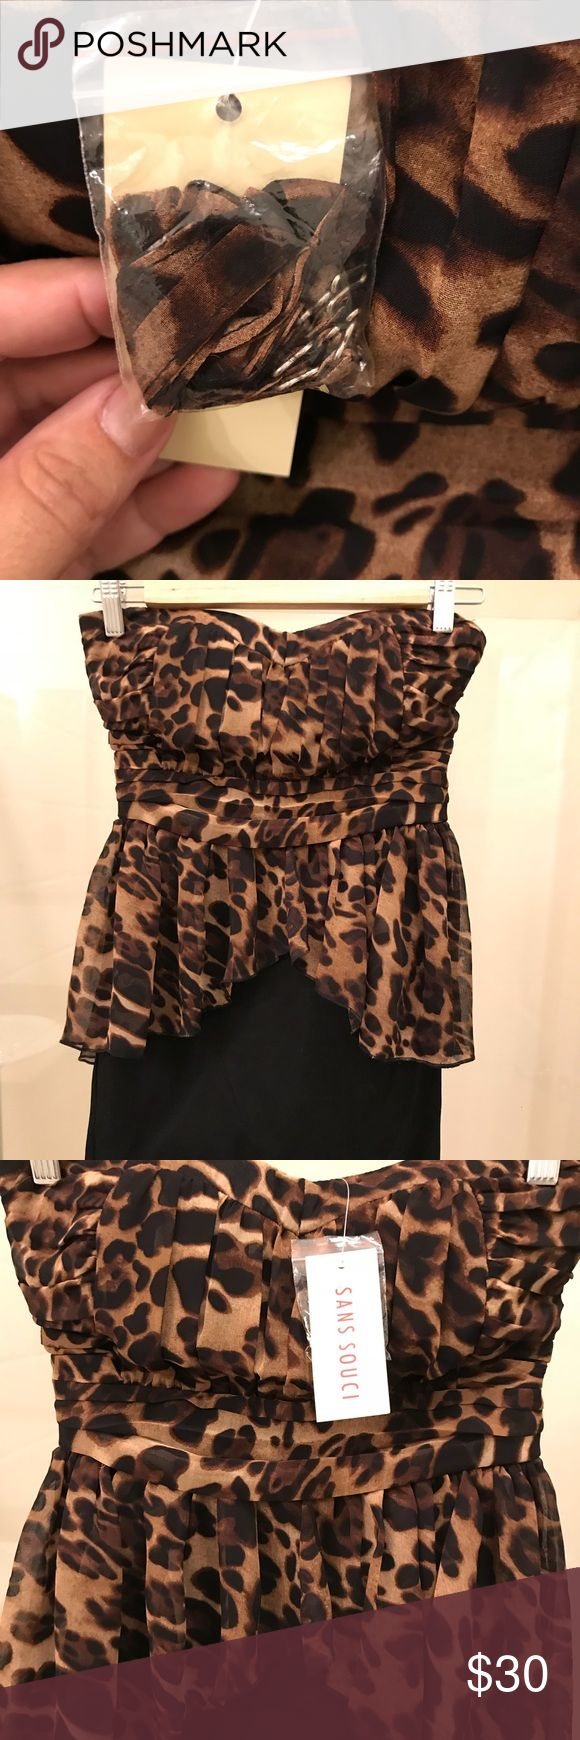 🌻 NWT 🌻 Sexy Animal Print mini dress This sexy strapless dress is perfect for a night out!! There are straps in the little pouch if you decide to wear it with straps. The zipper is on the side and very subtle. Offers always accepted!🌺 Sans Souci Dresses Mini